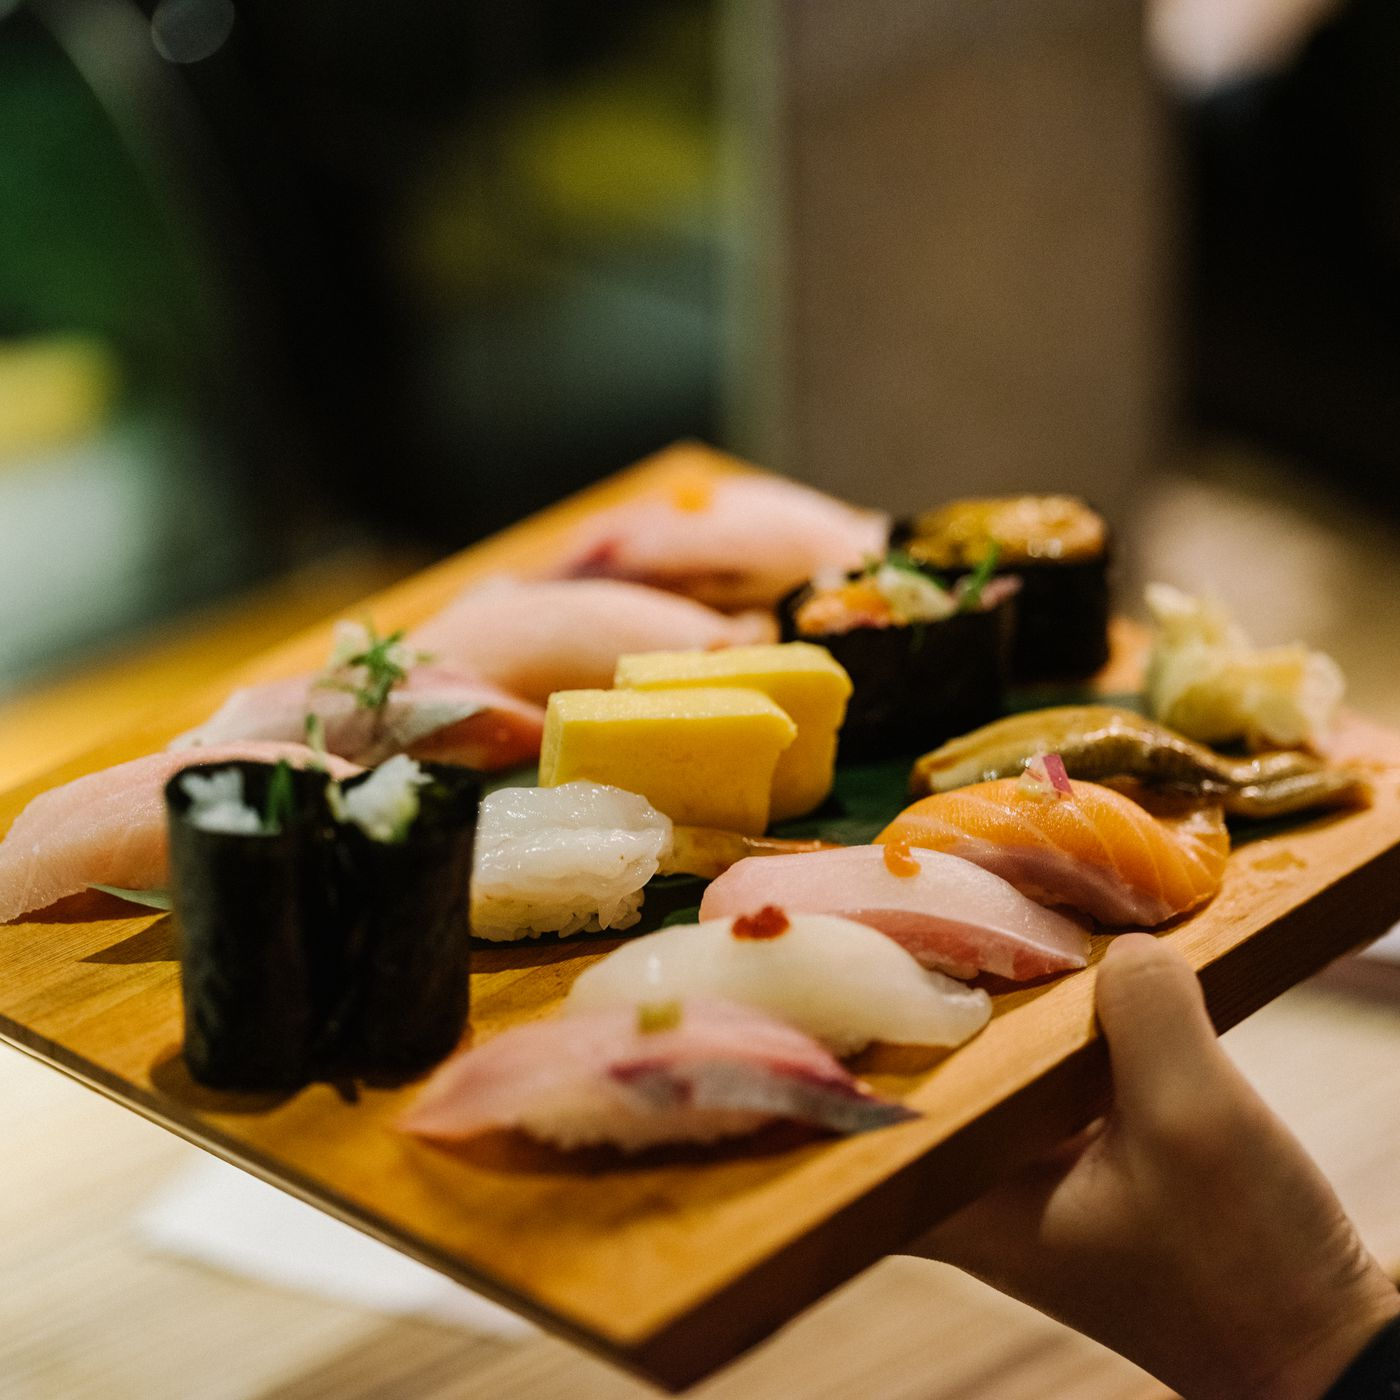 How To Tackle Addiction Aquatic Development Taipei S Seafood Paradise Eater Sushi station brings the freshest and highest quality sushi at a reasonable price. addiction aquatic development